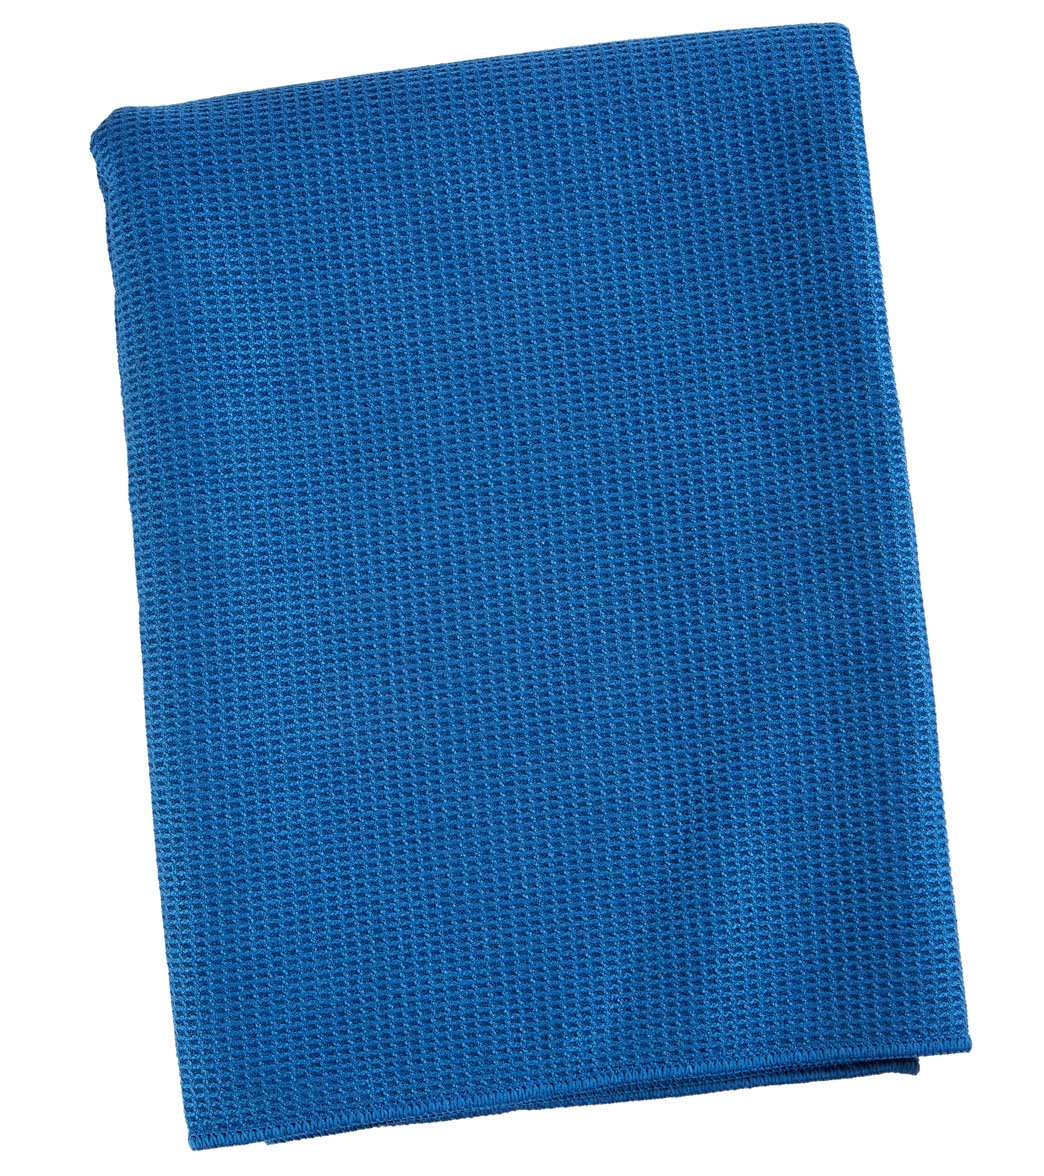 Everyday Yoga Waffle Grip Mat Towel at YogaOutlet.com 06d03d2ad33a2